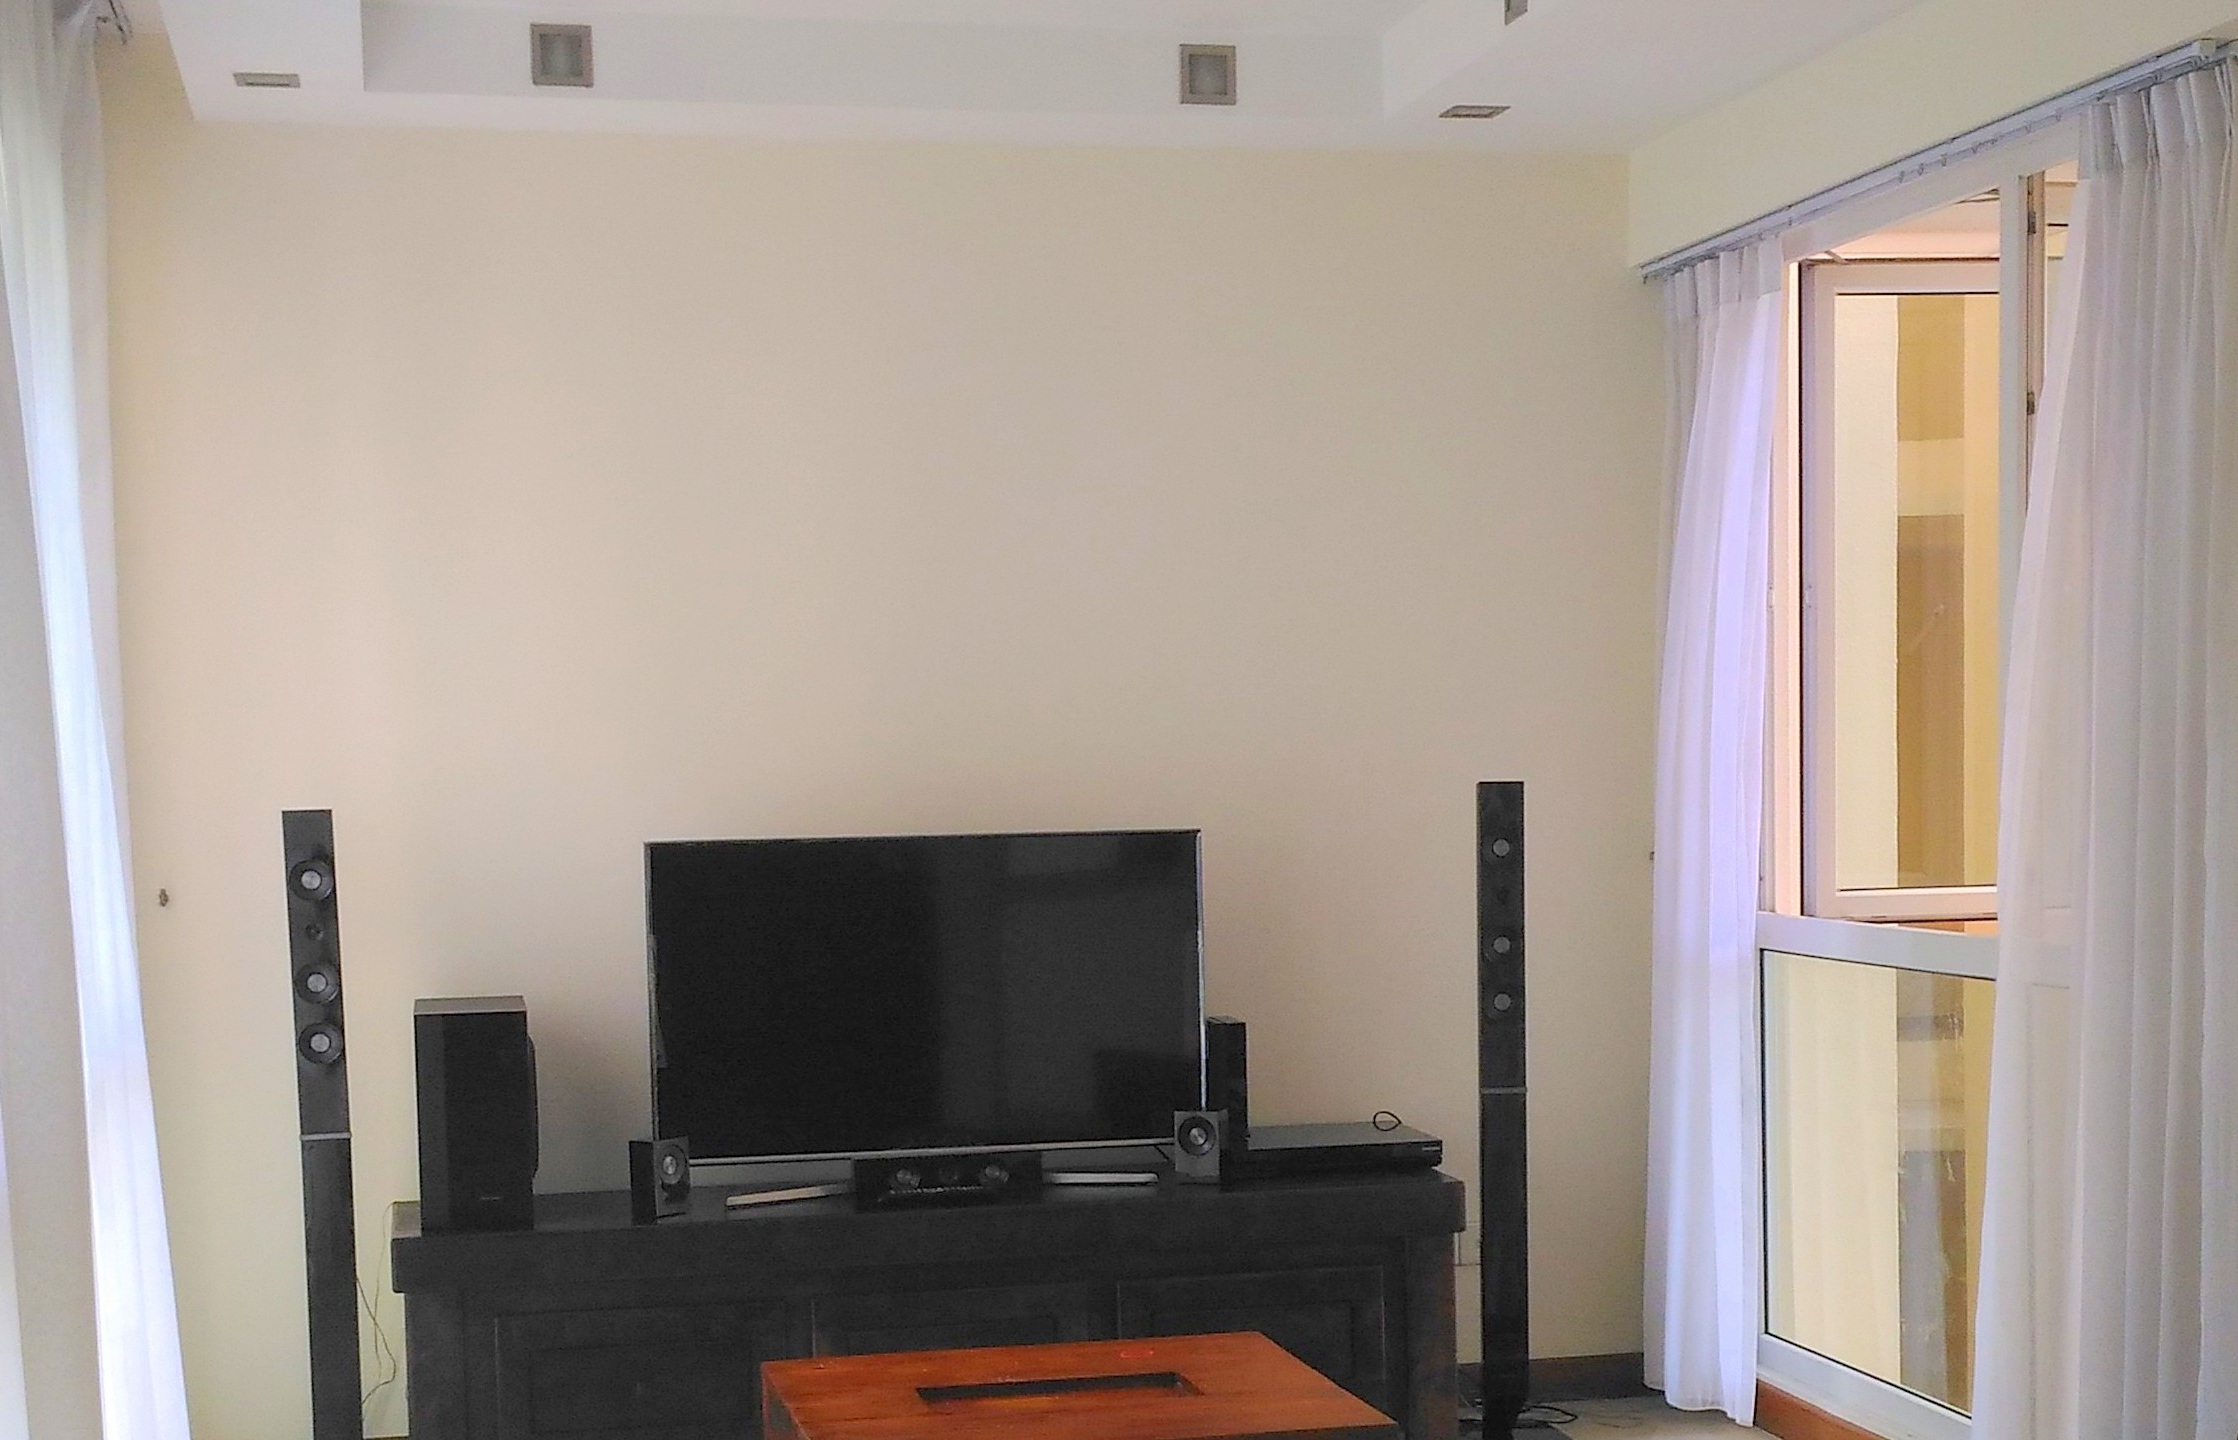 Nippon Paint Pre Painting Guide! Mums And Babies Nippon Paint Designs Living Room